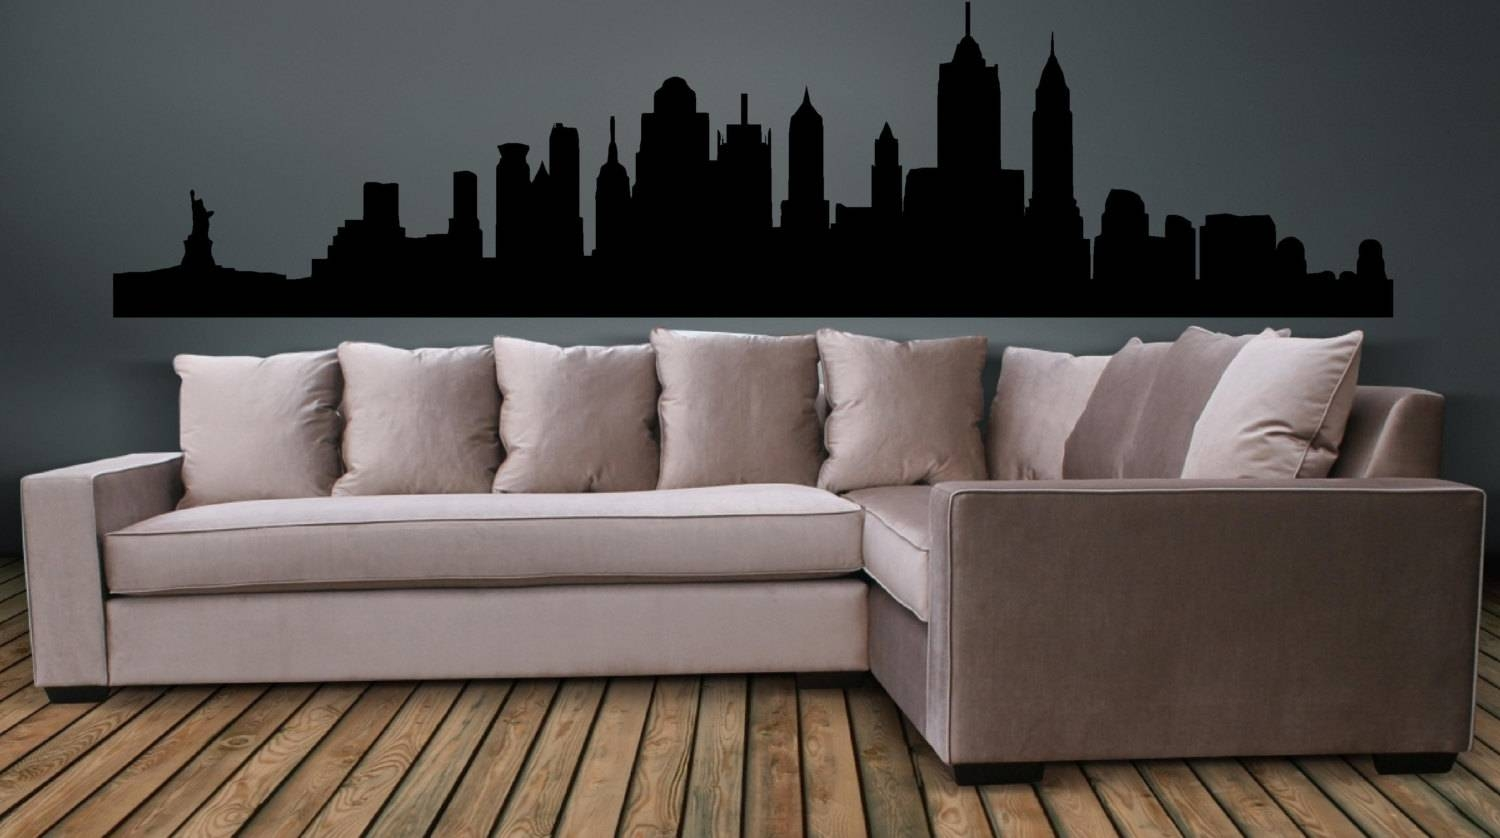 New York City Skyline Wall Decal Wall Art Sticker Pertaining To Most Recent New York City Wall Art (View 7 of 20)